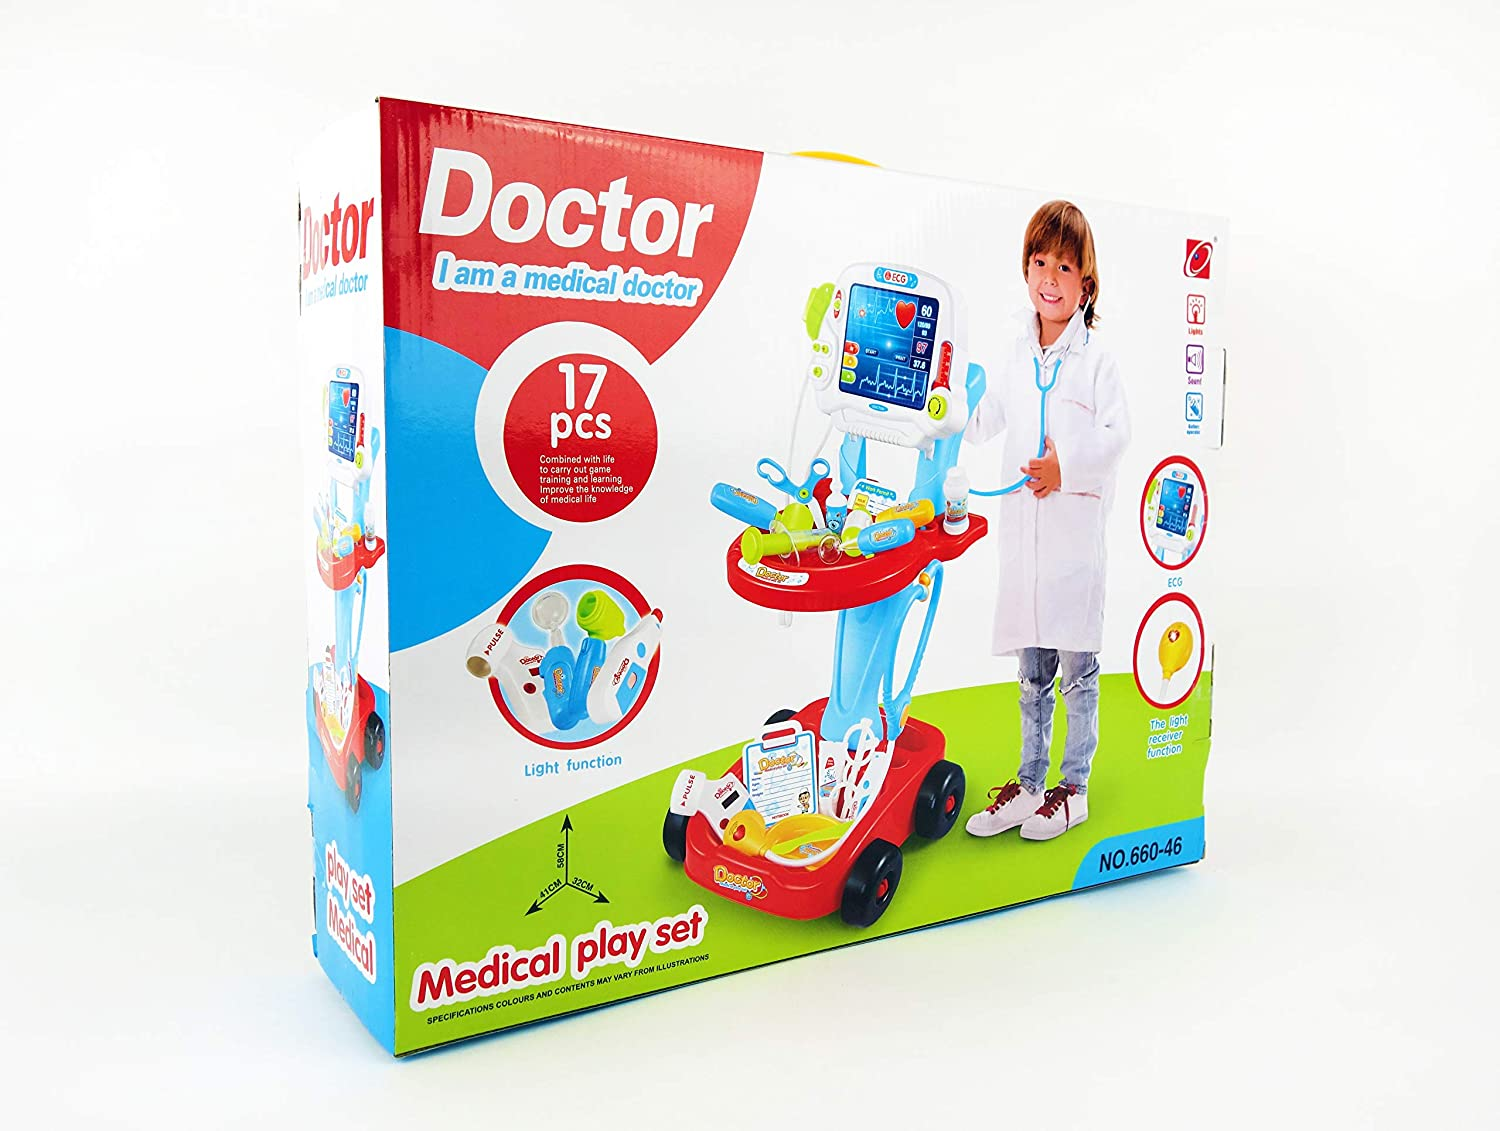 NBD Kids ToyポータブルDoctorセット、17ピースセットwith再生画面and Play Doctor Instruments   B07CHY42B9